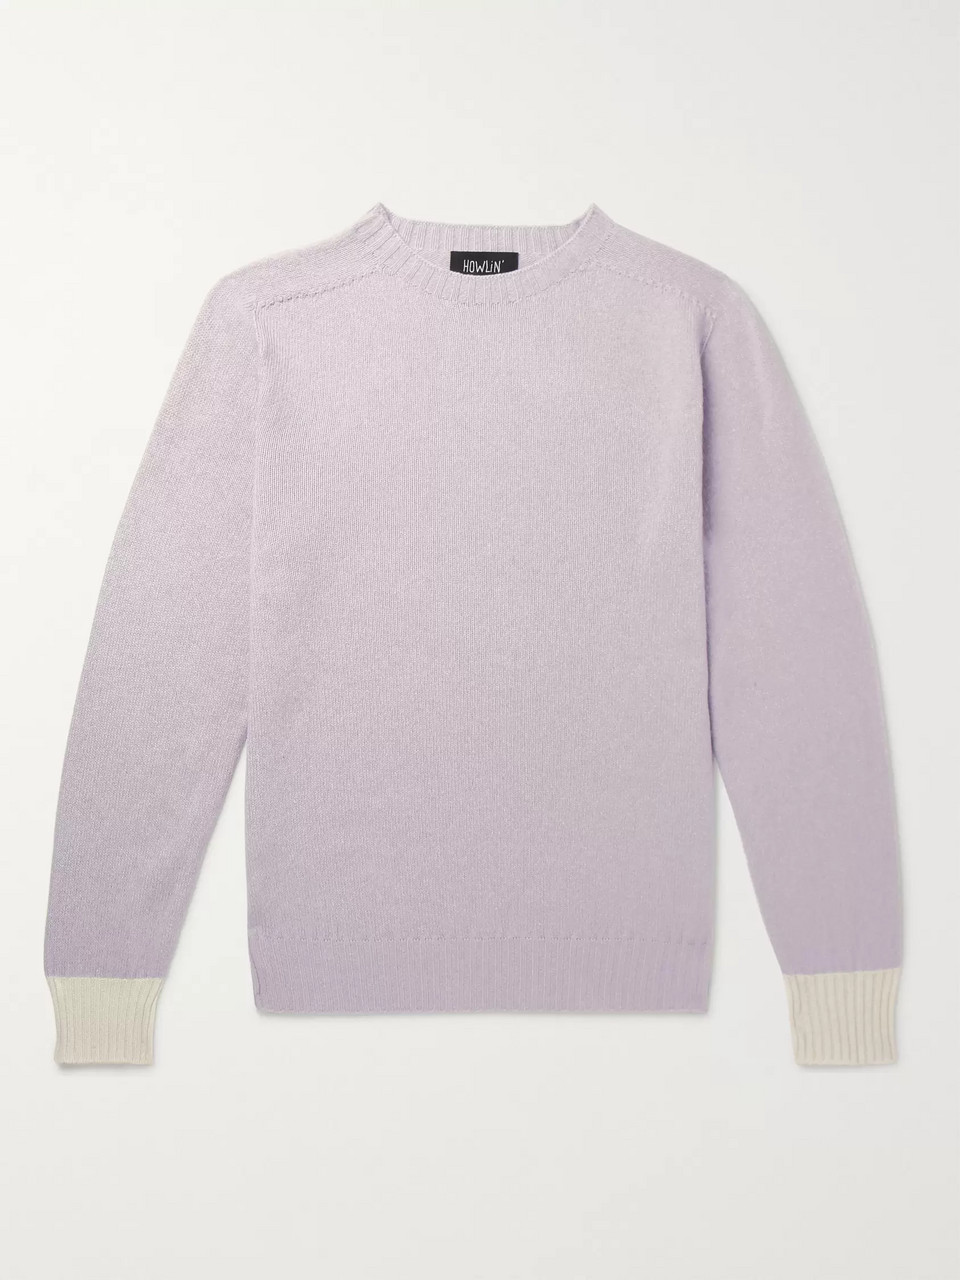 Howlin' Life In Reverse Two-Tone Wool and Cotton-Blend Sweater